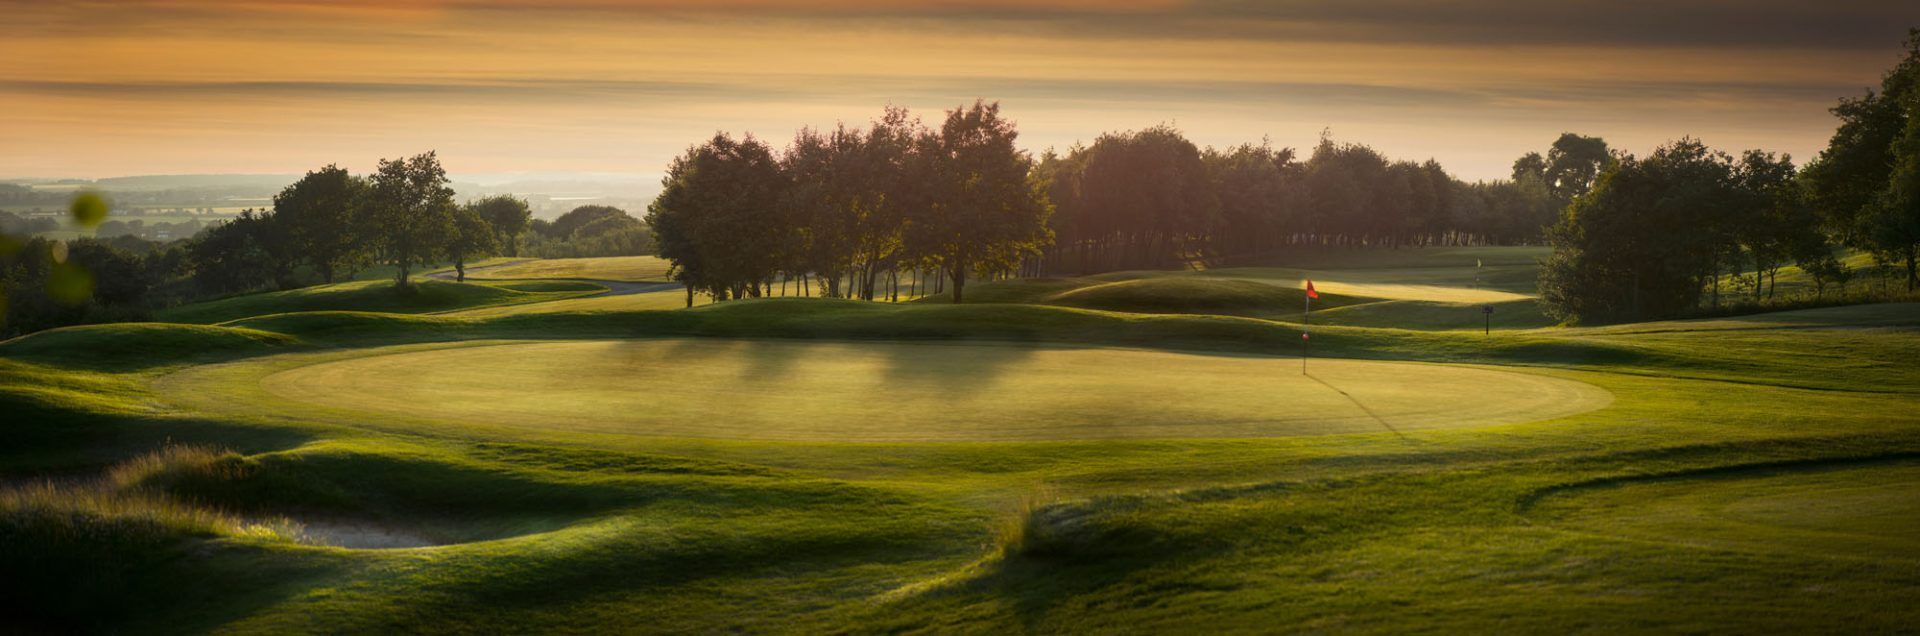 Golf Club in Italia